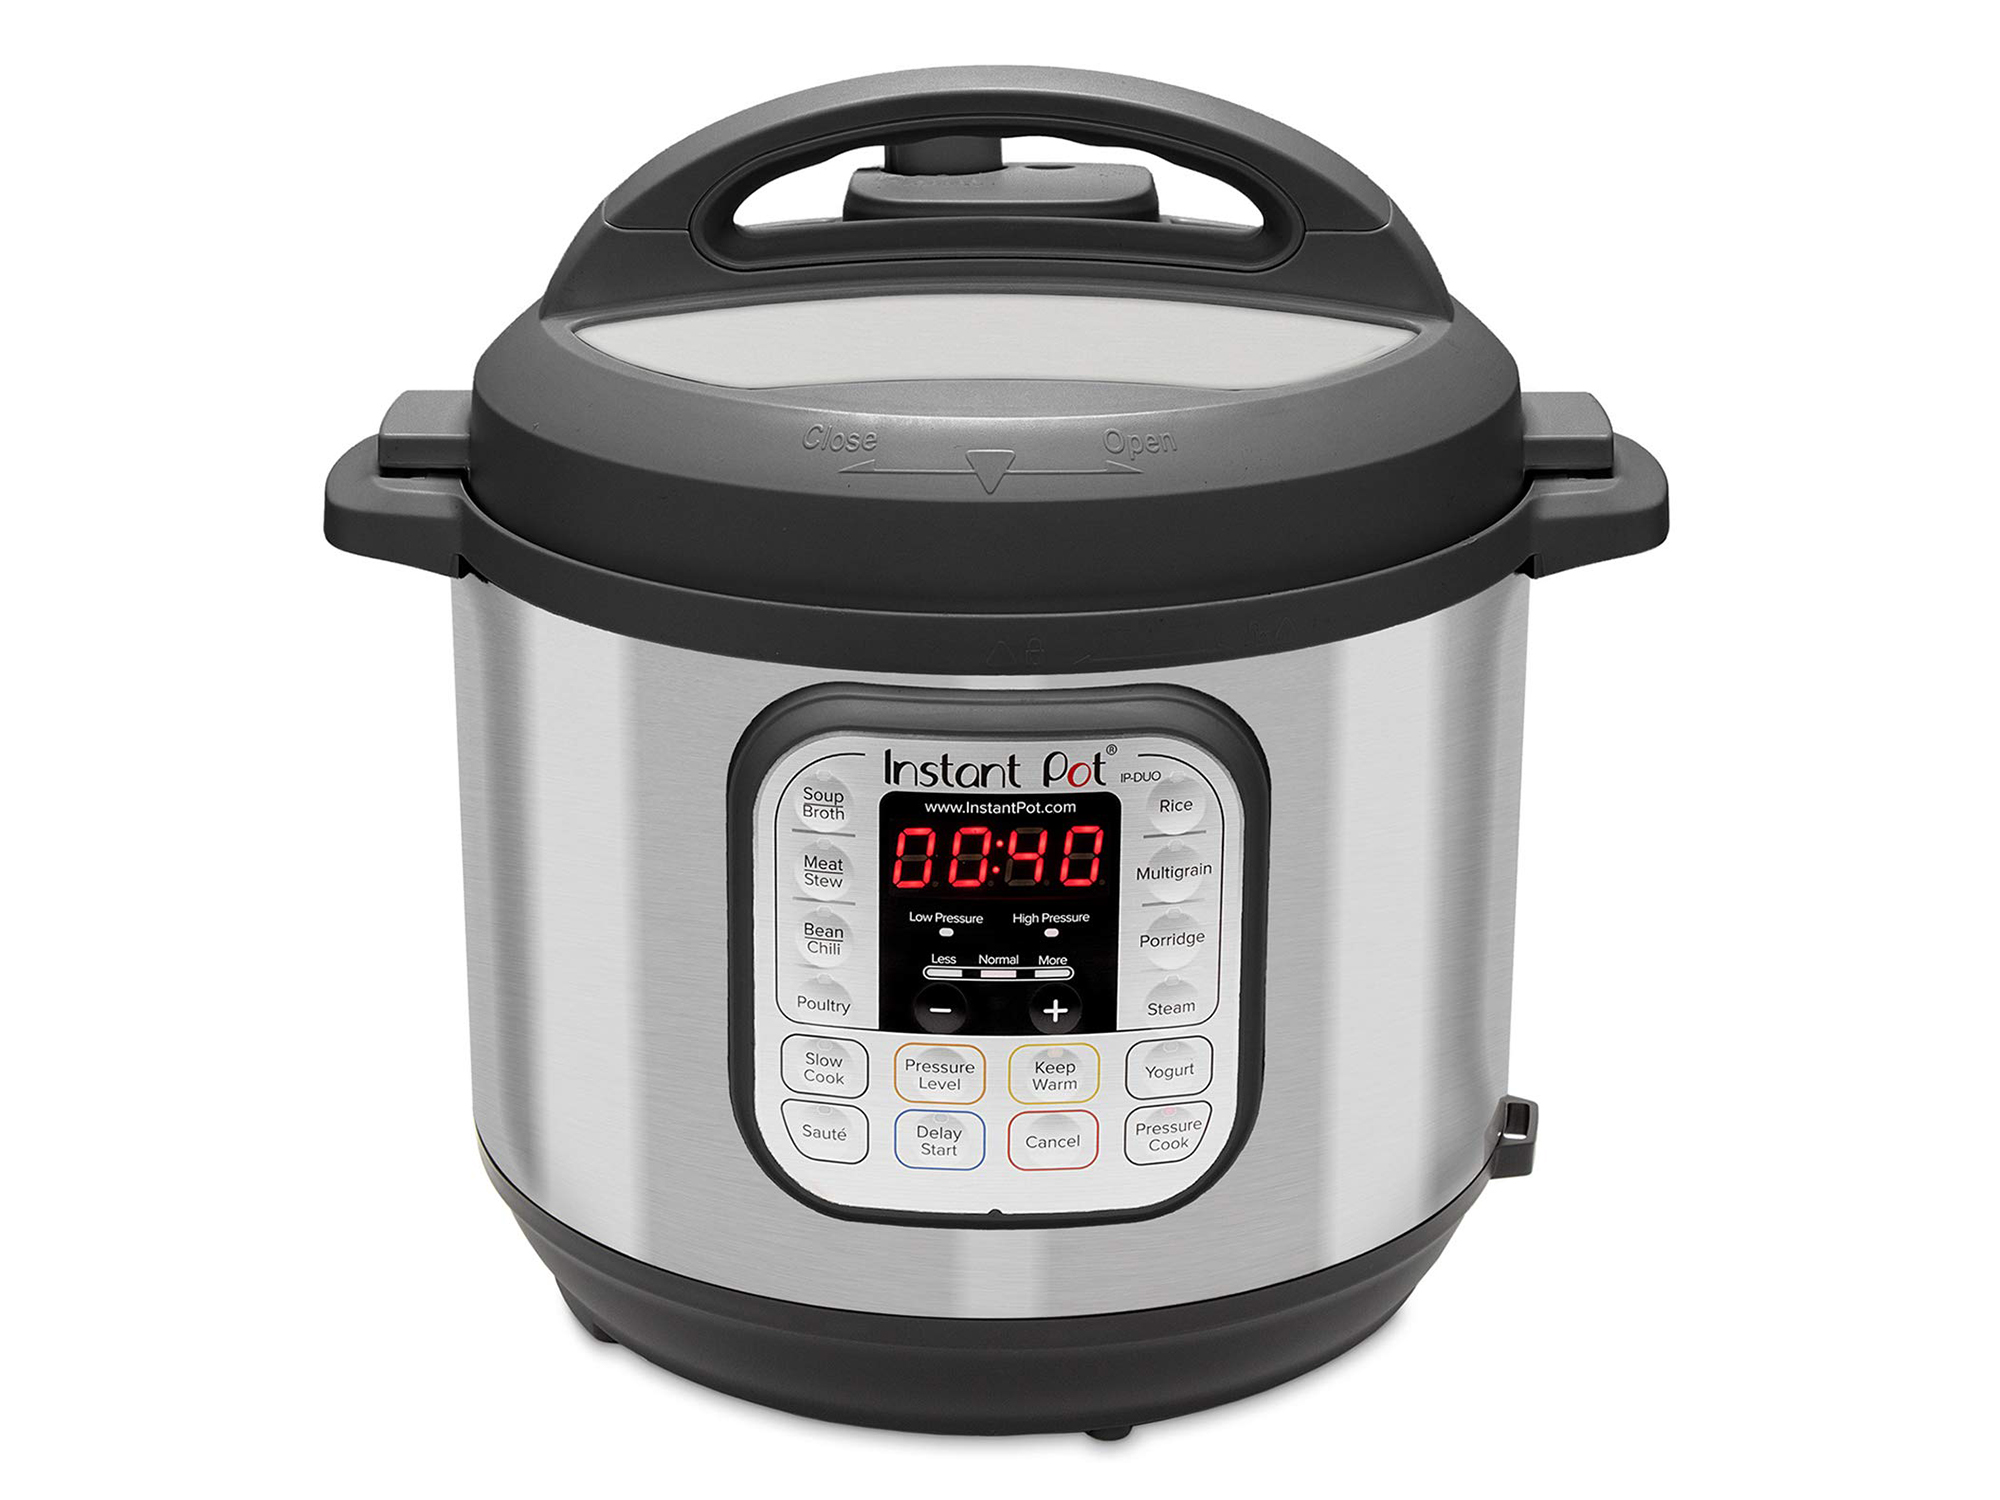 Instant Pot Duo 80 7-in-1 Electric Pressure Cooker